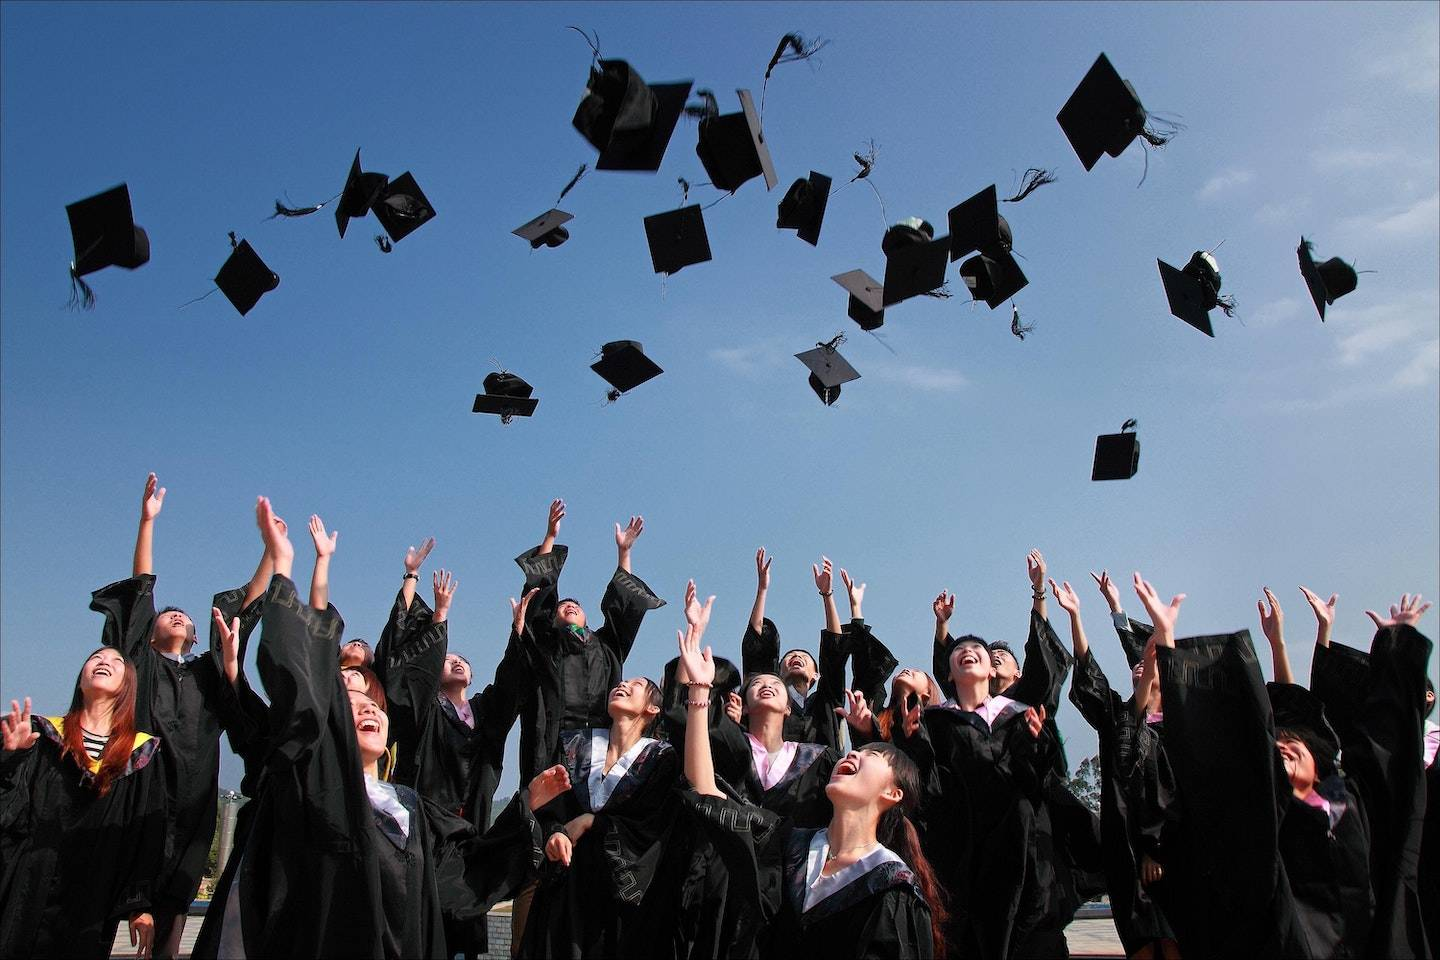 Our View: Strange time for Langley grads